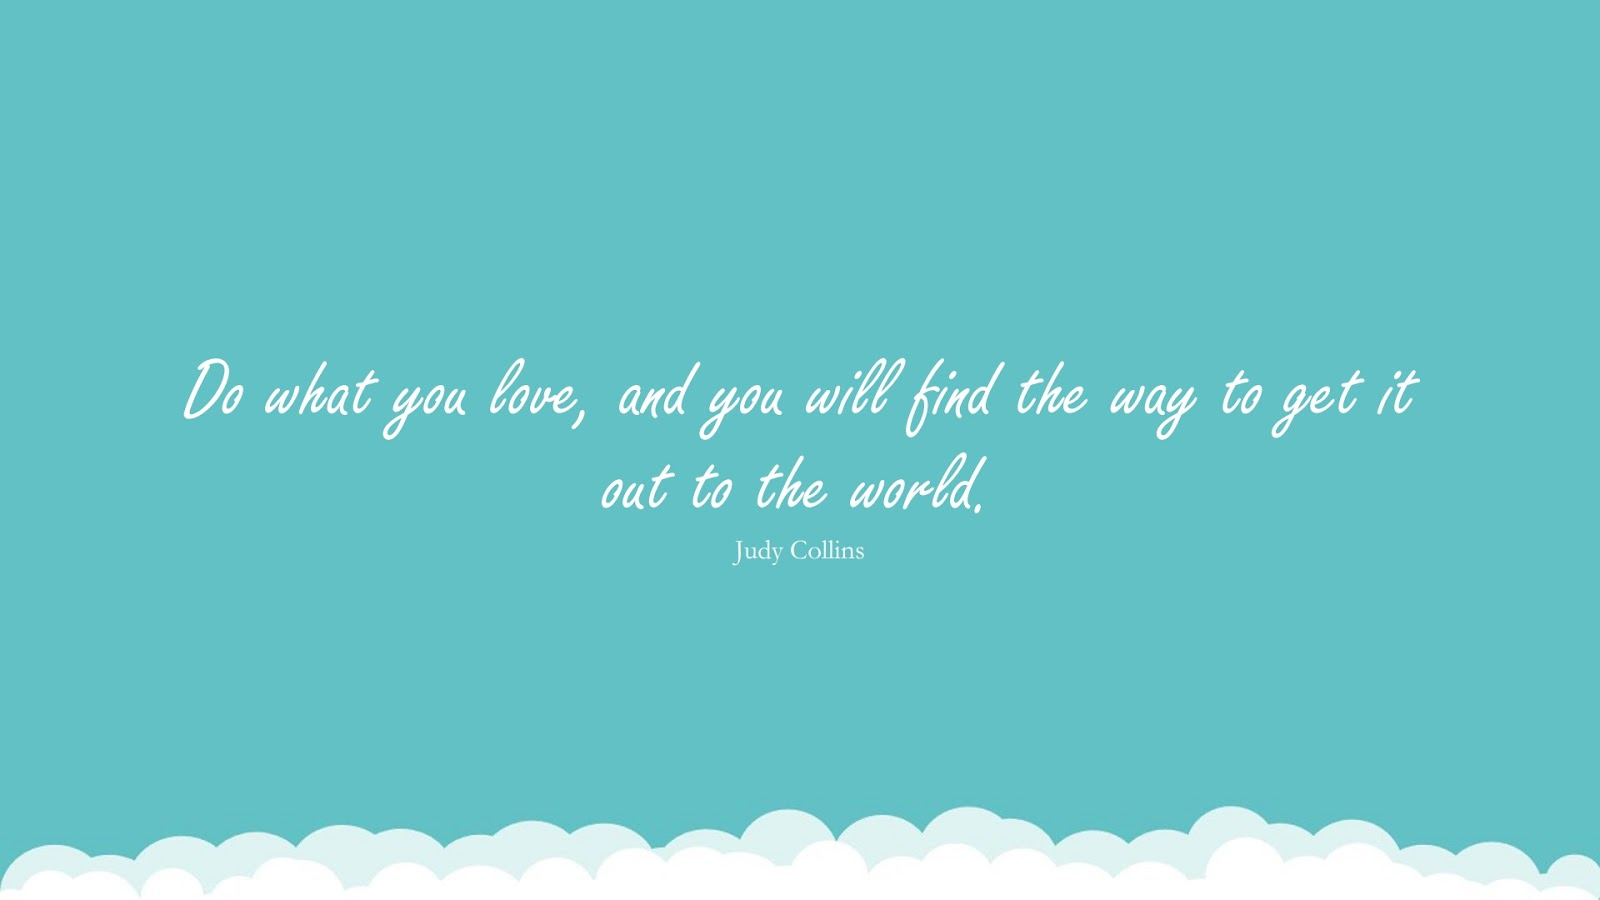 Do what you love, and you will find the way to get it out to the world. (Judy Collins);  #LoveQuotes